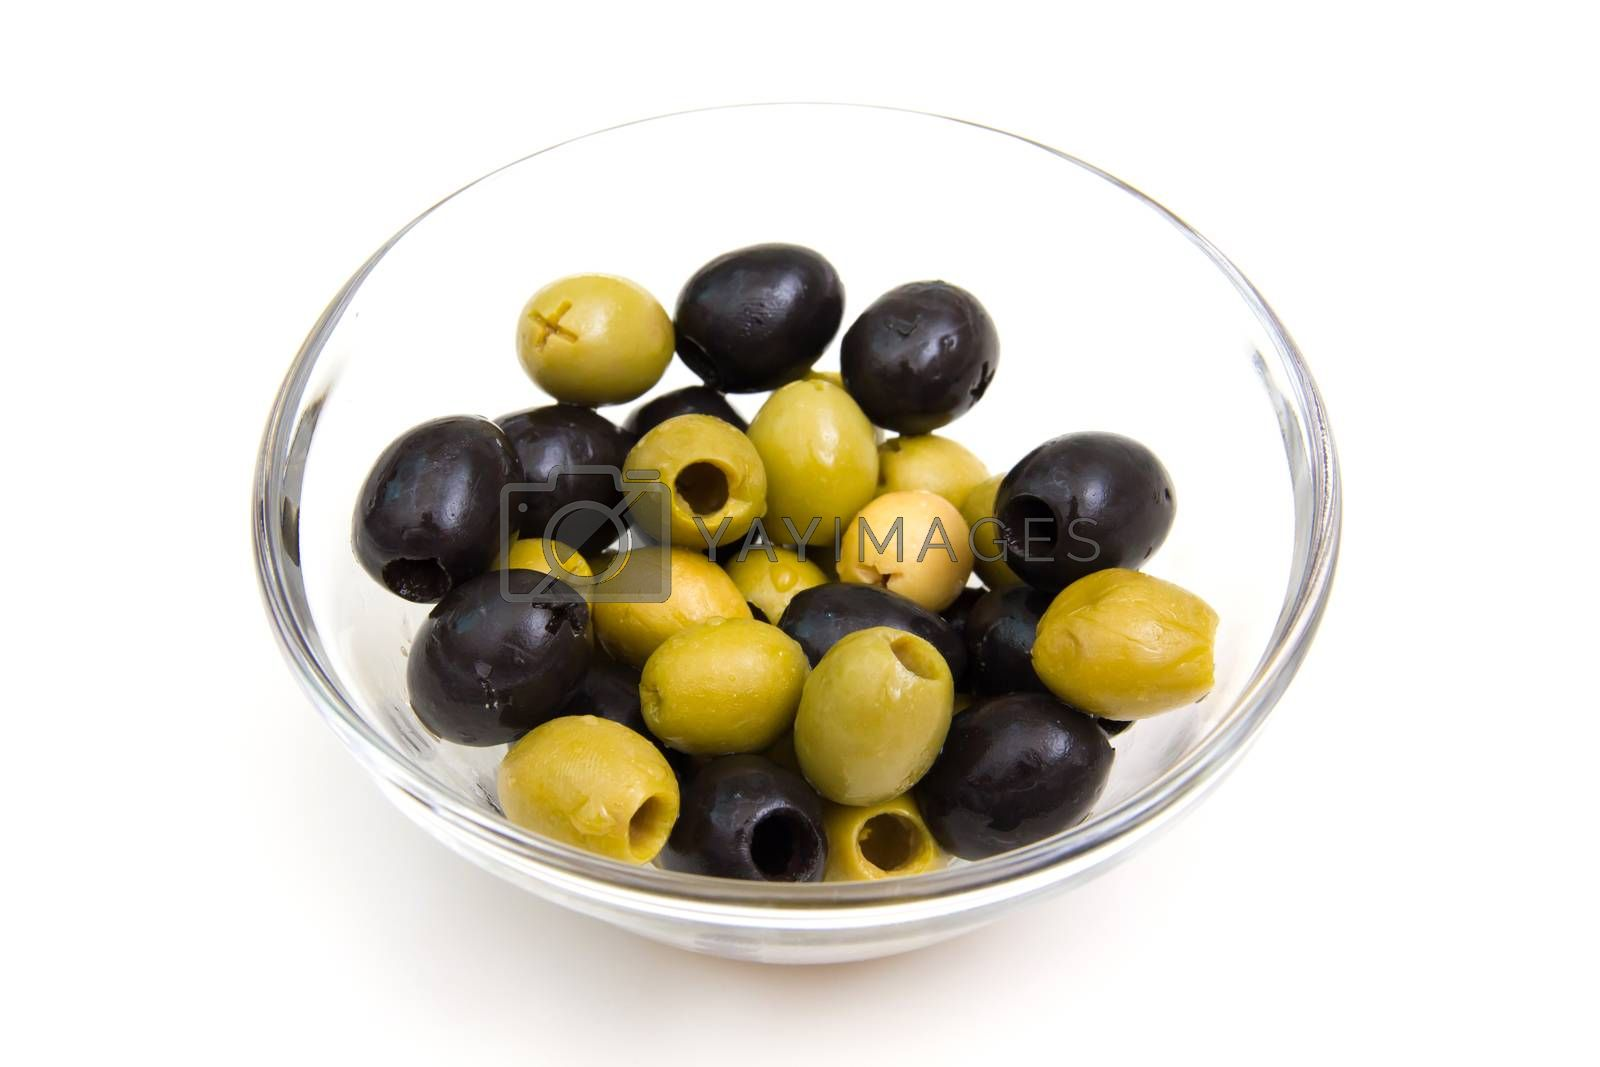 Green and black olives on bowl on white background